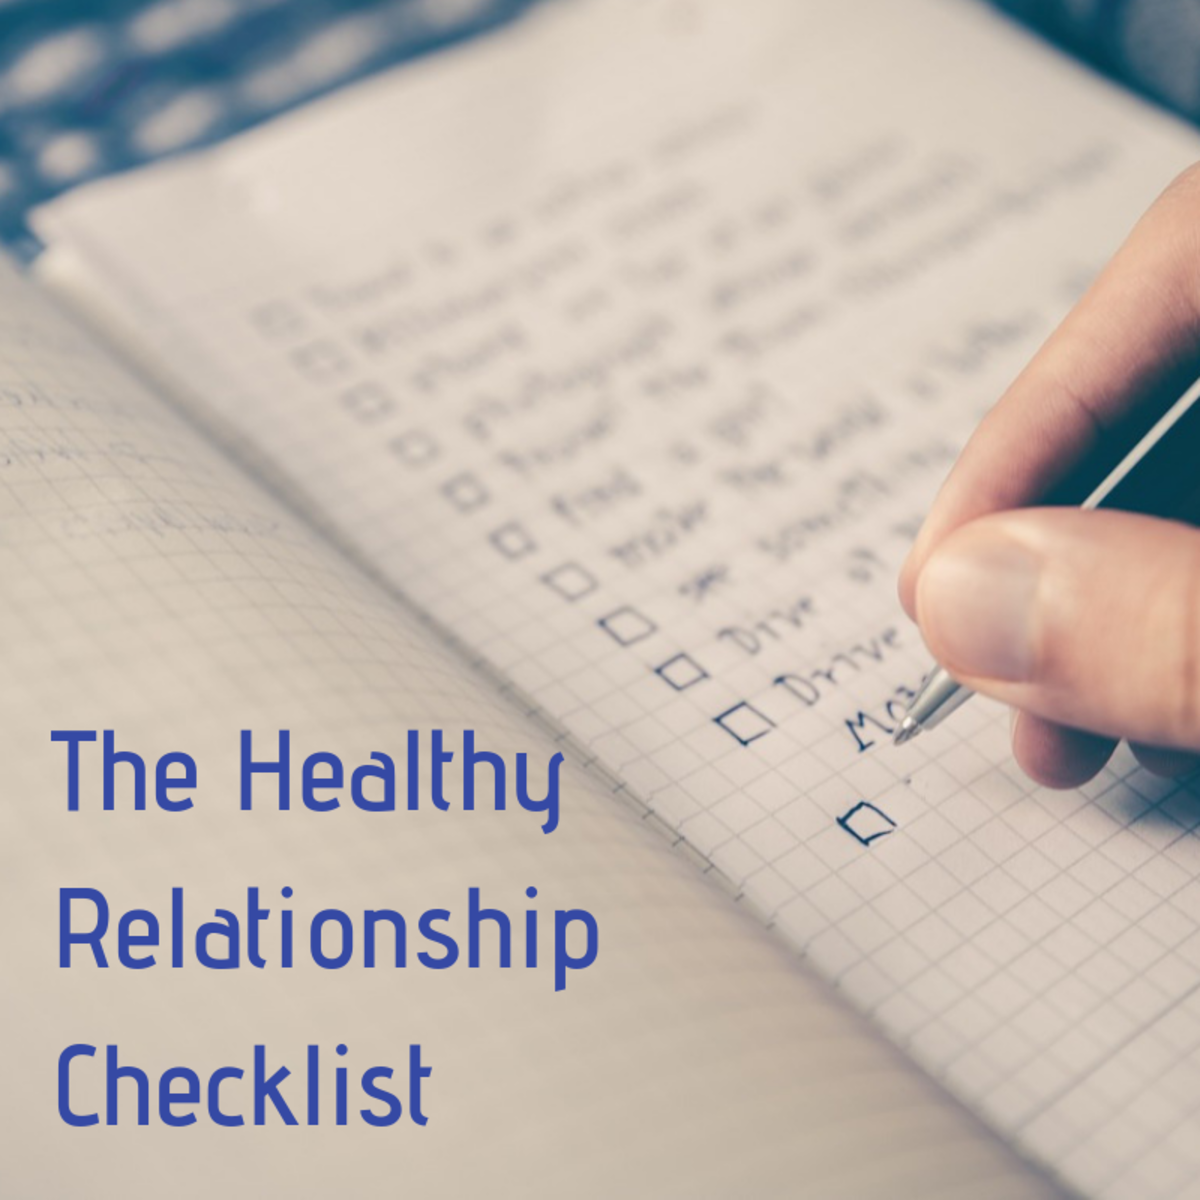 It's important to regularly evaluate your relationship and make sure that it's working well for both of you. This checklist will help you do just that.